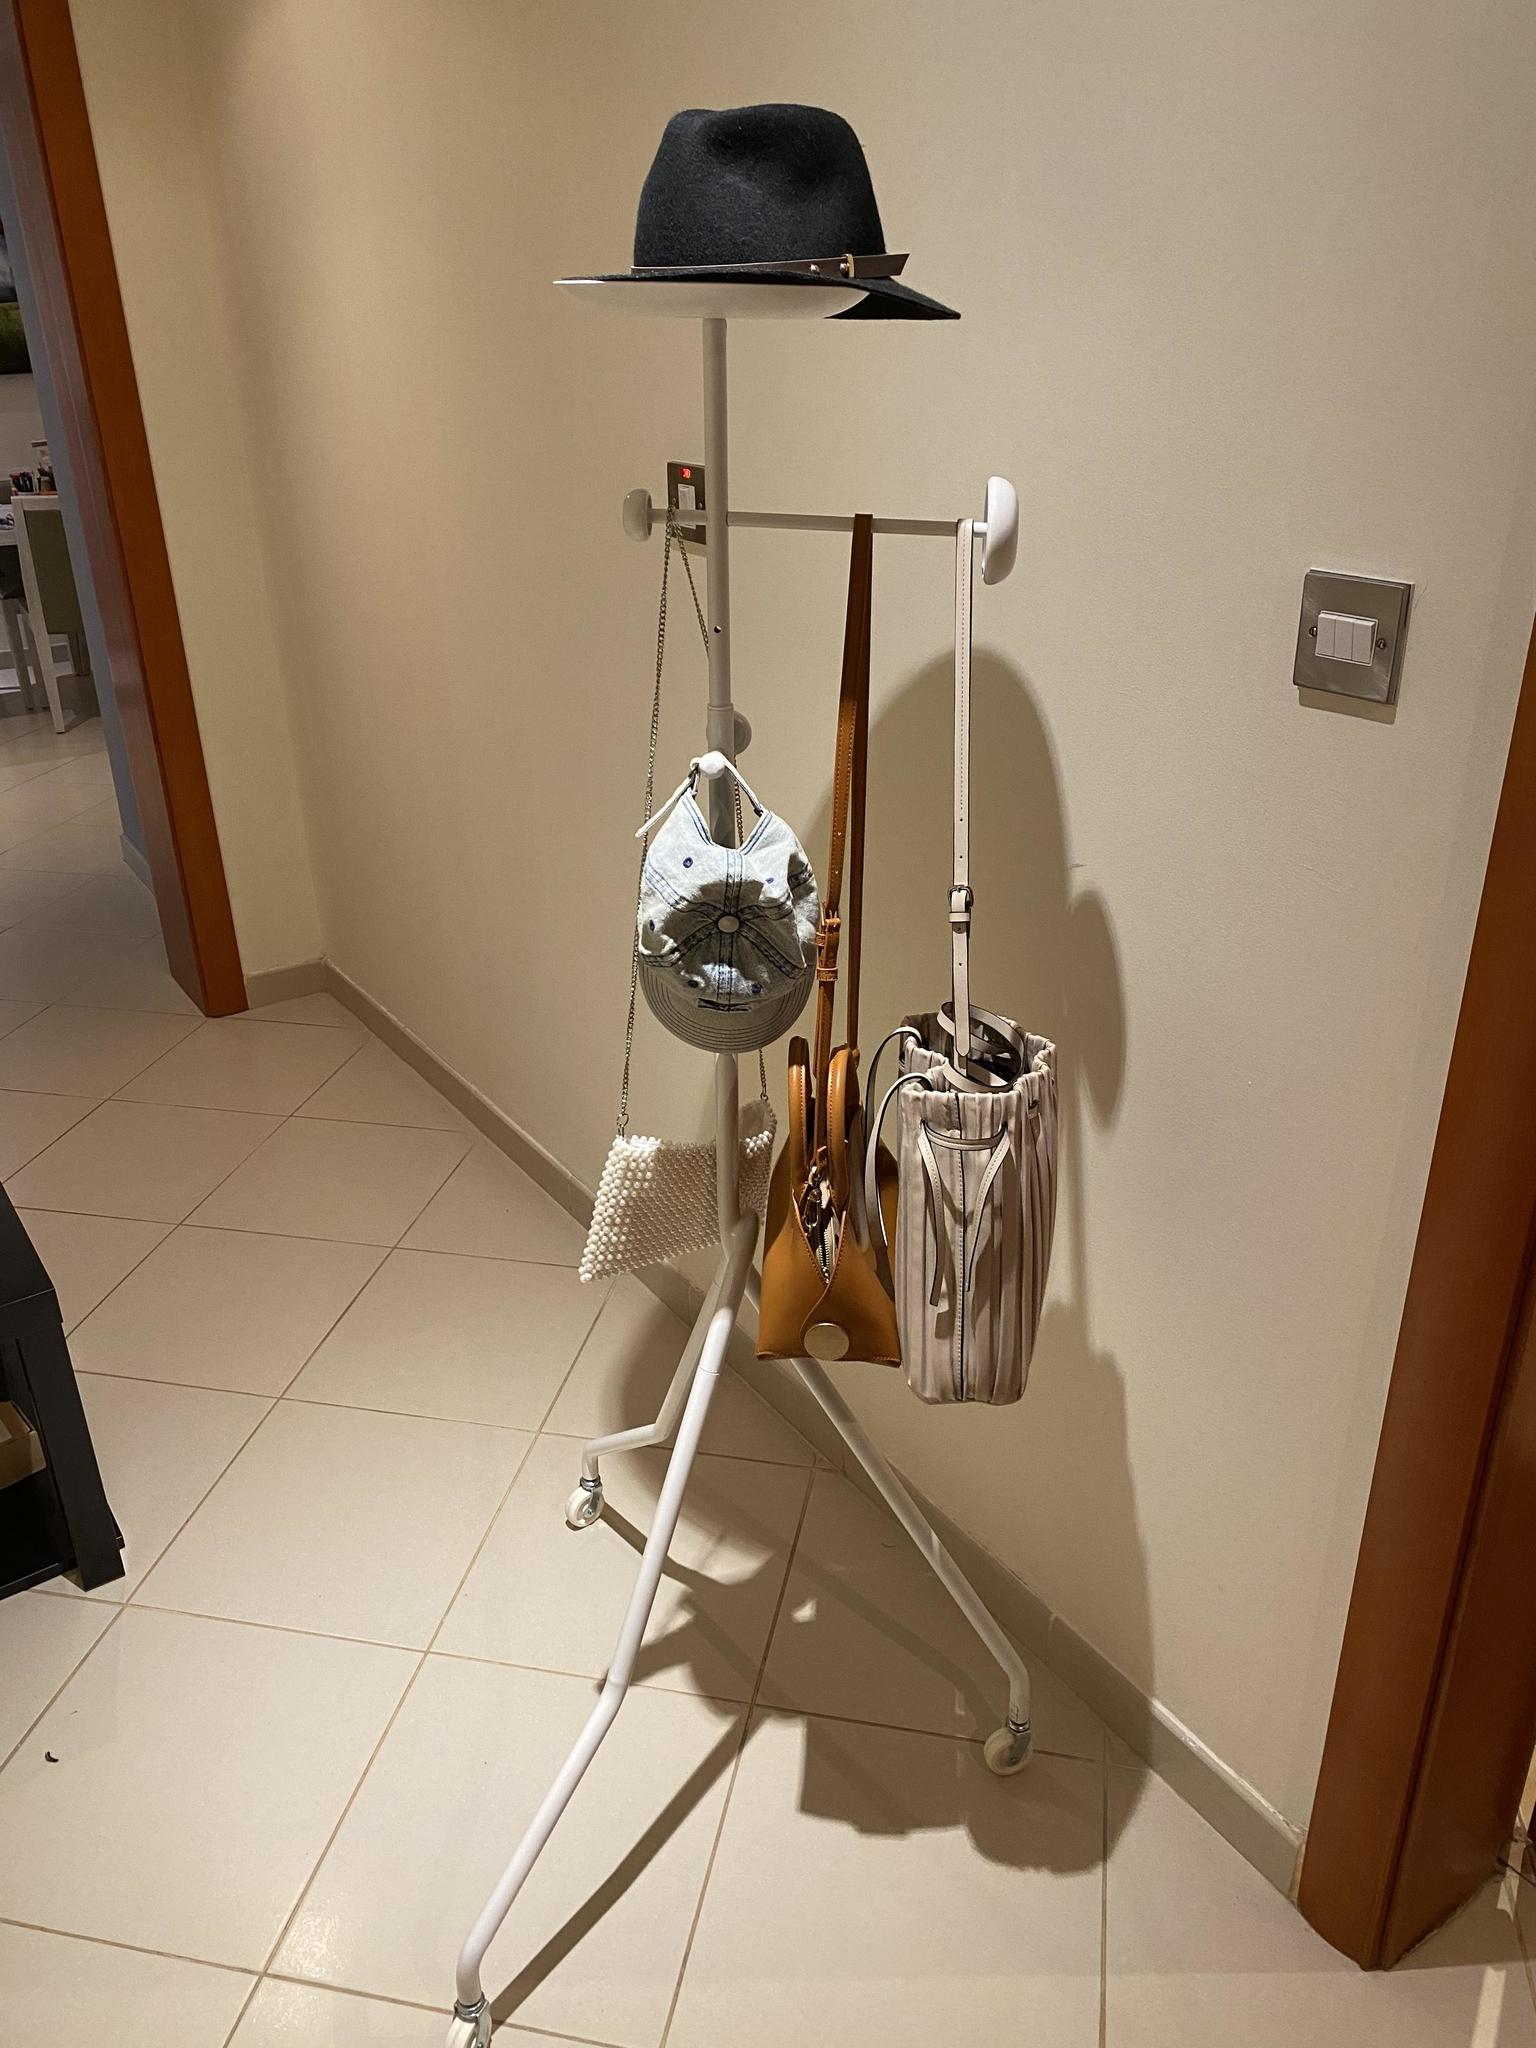 Hat and bag stand